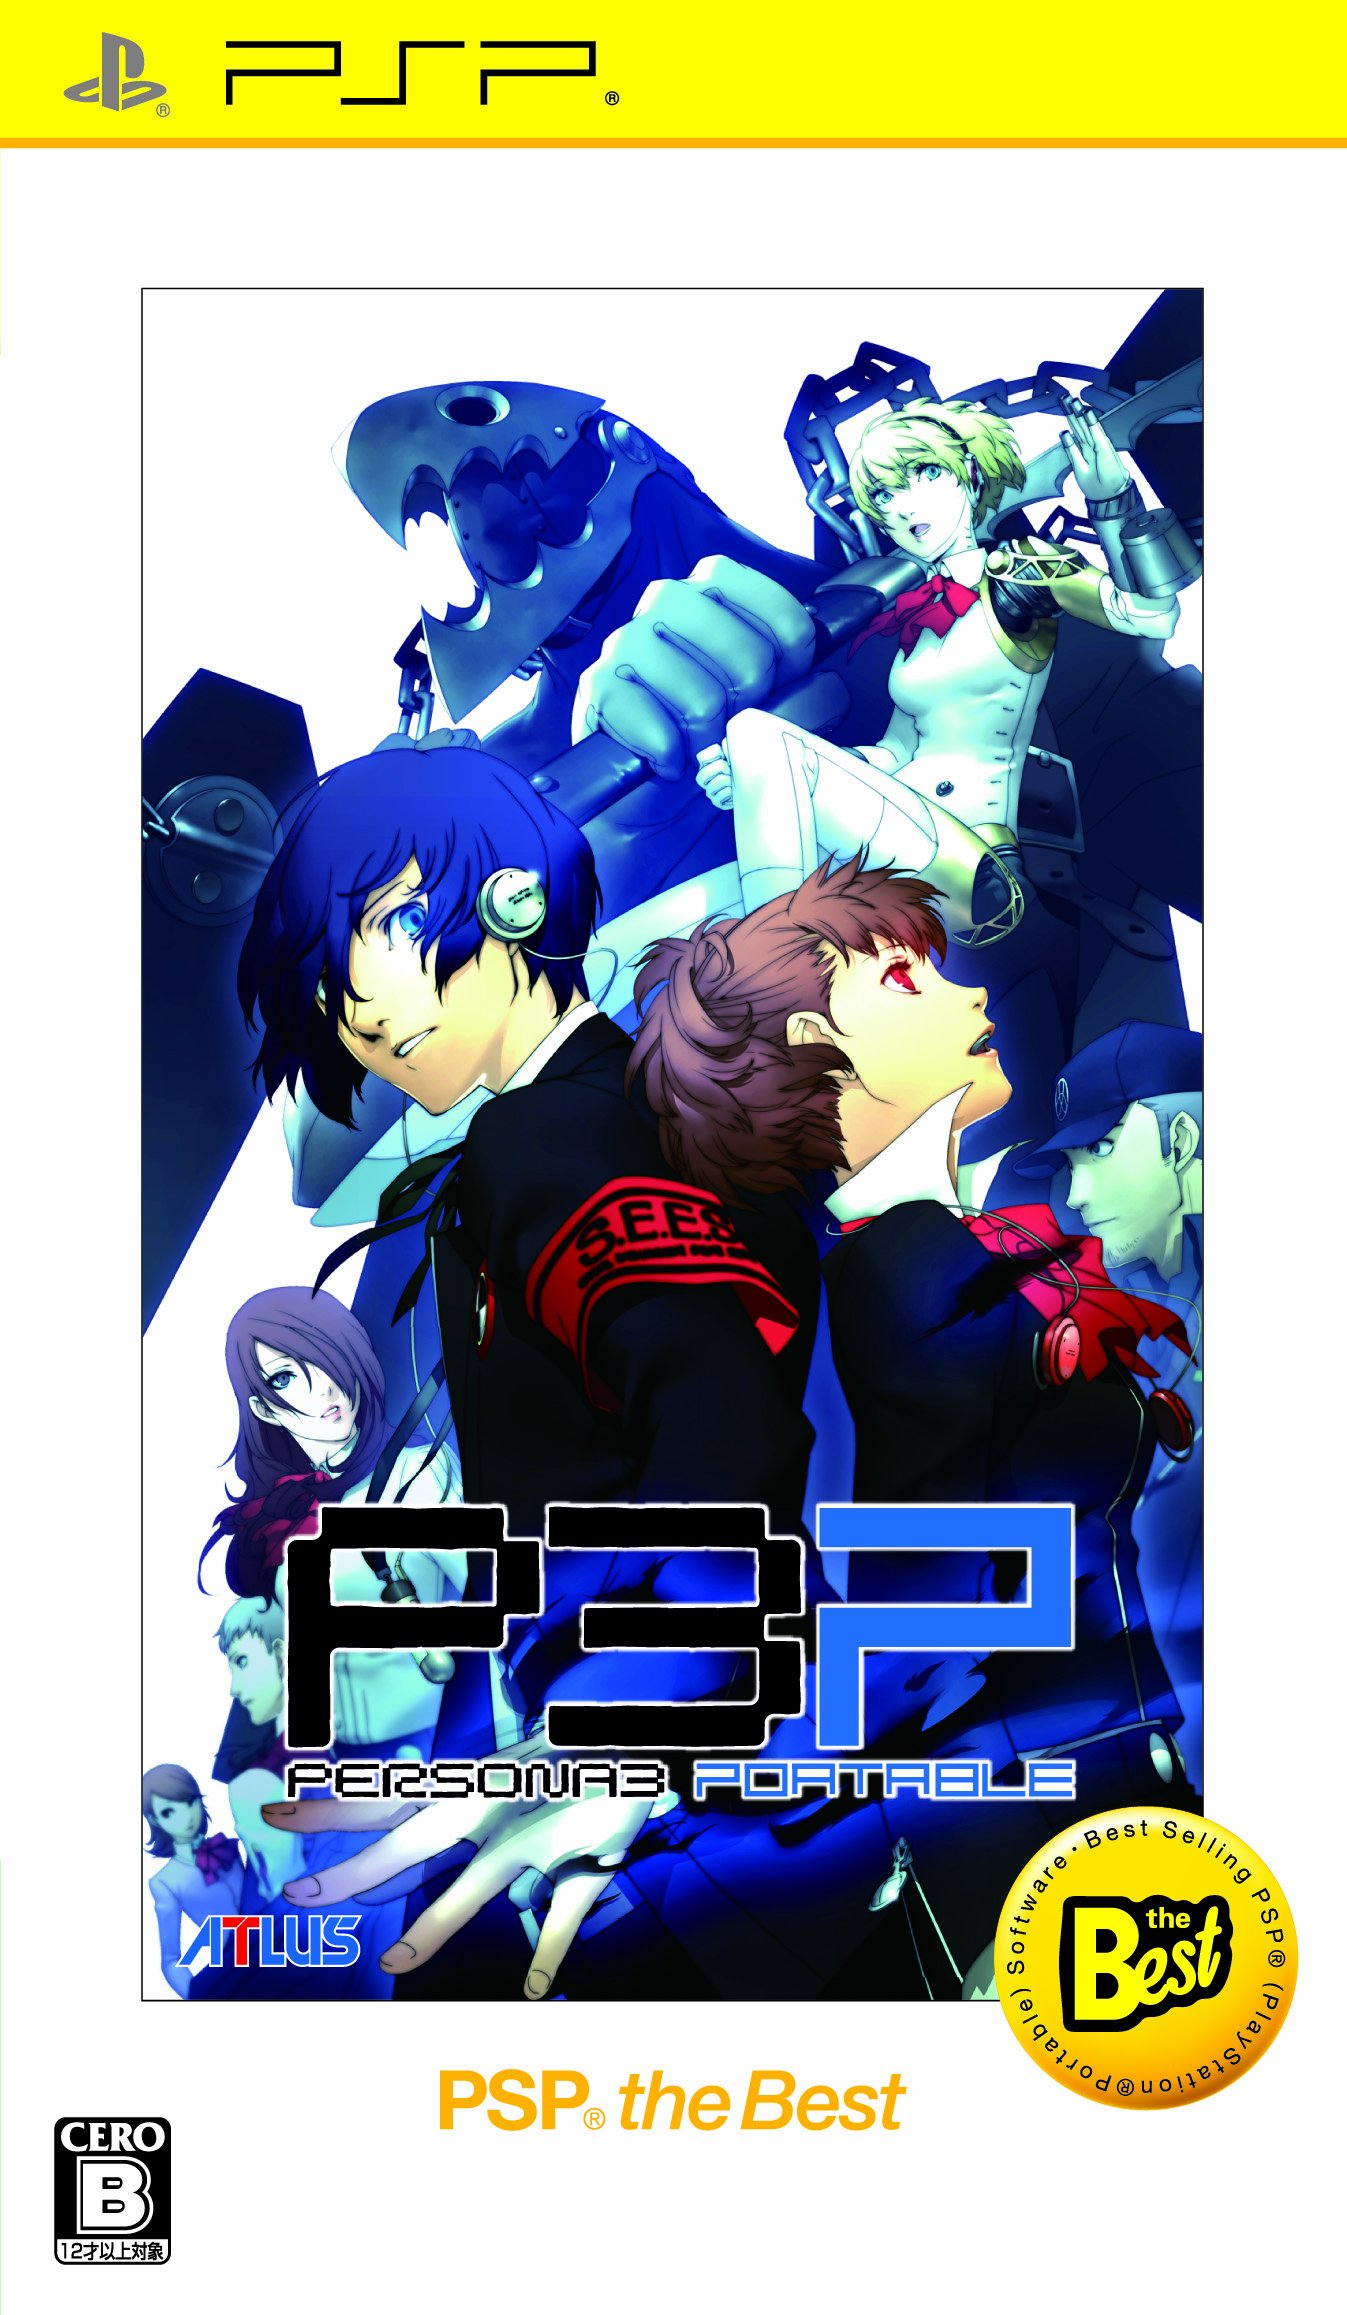 Persona 3 Portable (PSP the Best) [Japan Import]